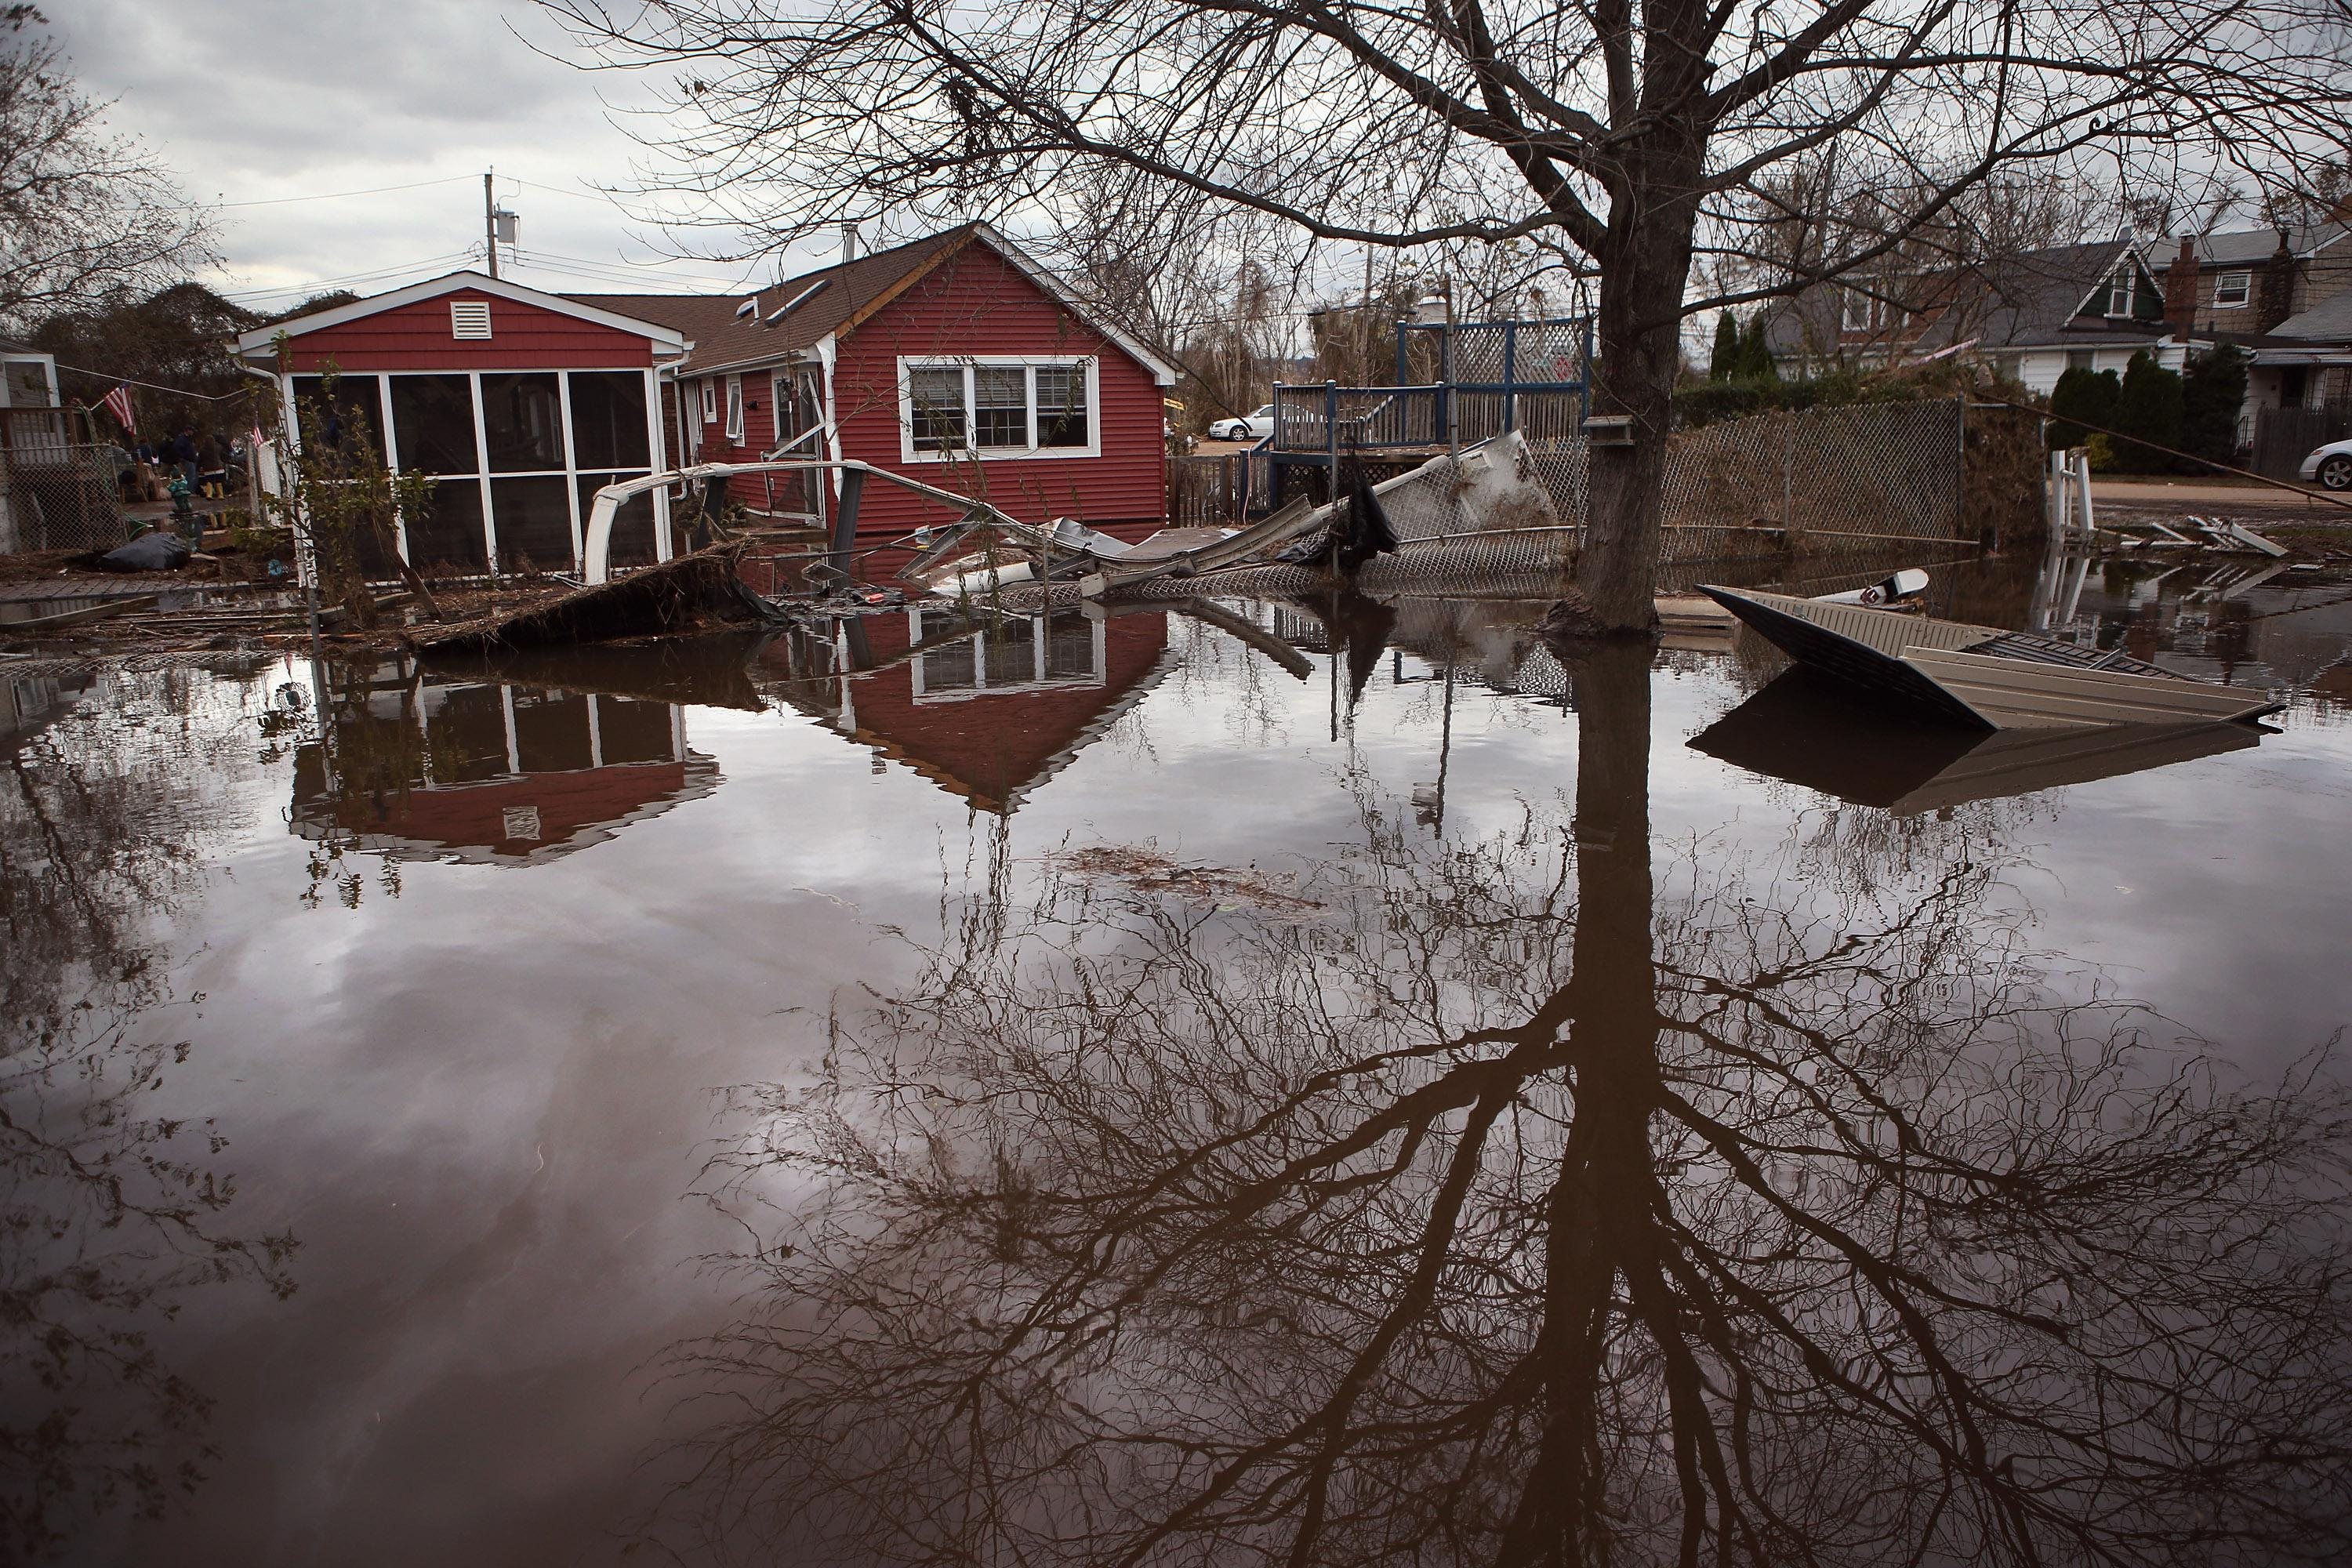 Water continues to flood a neighborhood on November 1, 2012 in the Ocean Breeze area of the Staten Island borough of New York City.